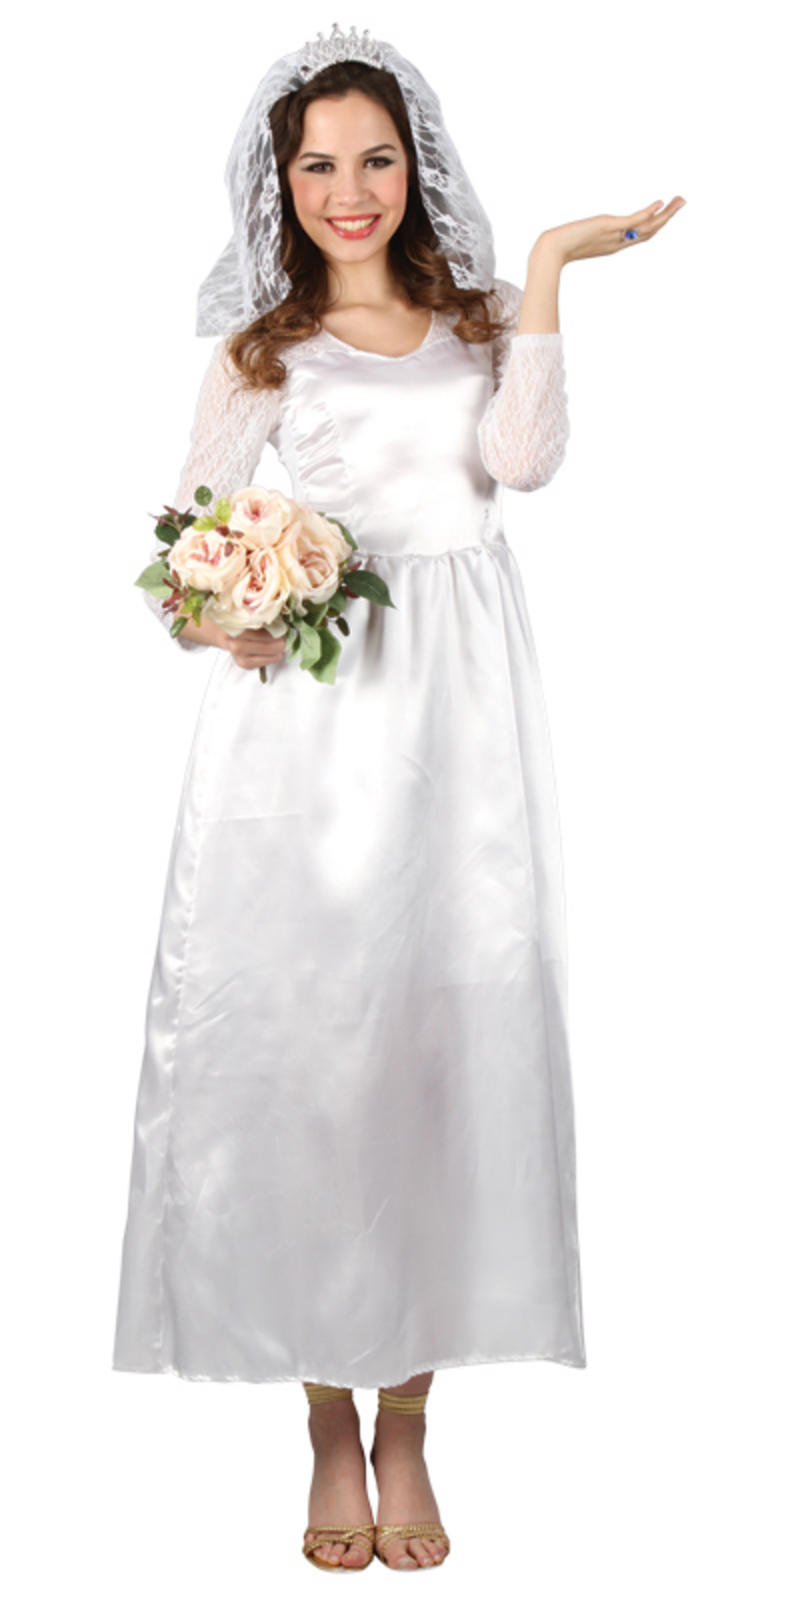 download image wedding dress halloween costume girls pc android